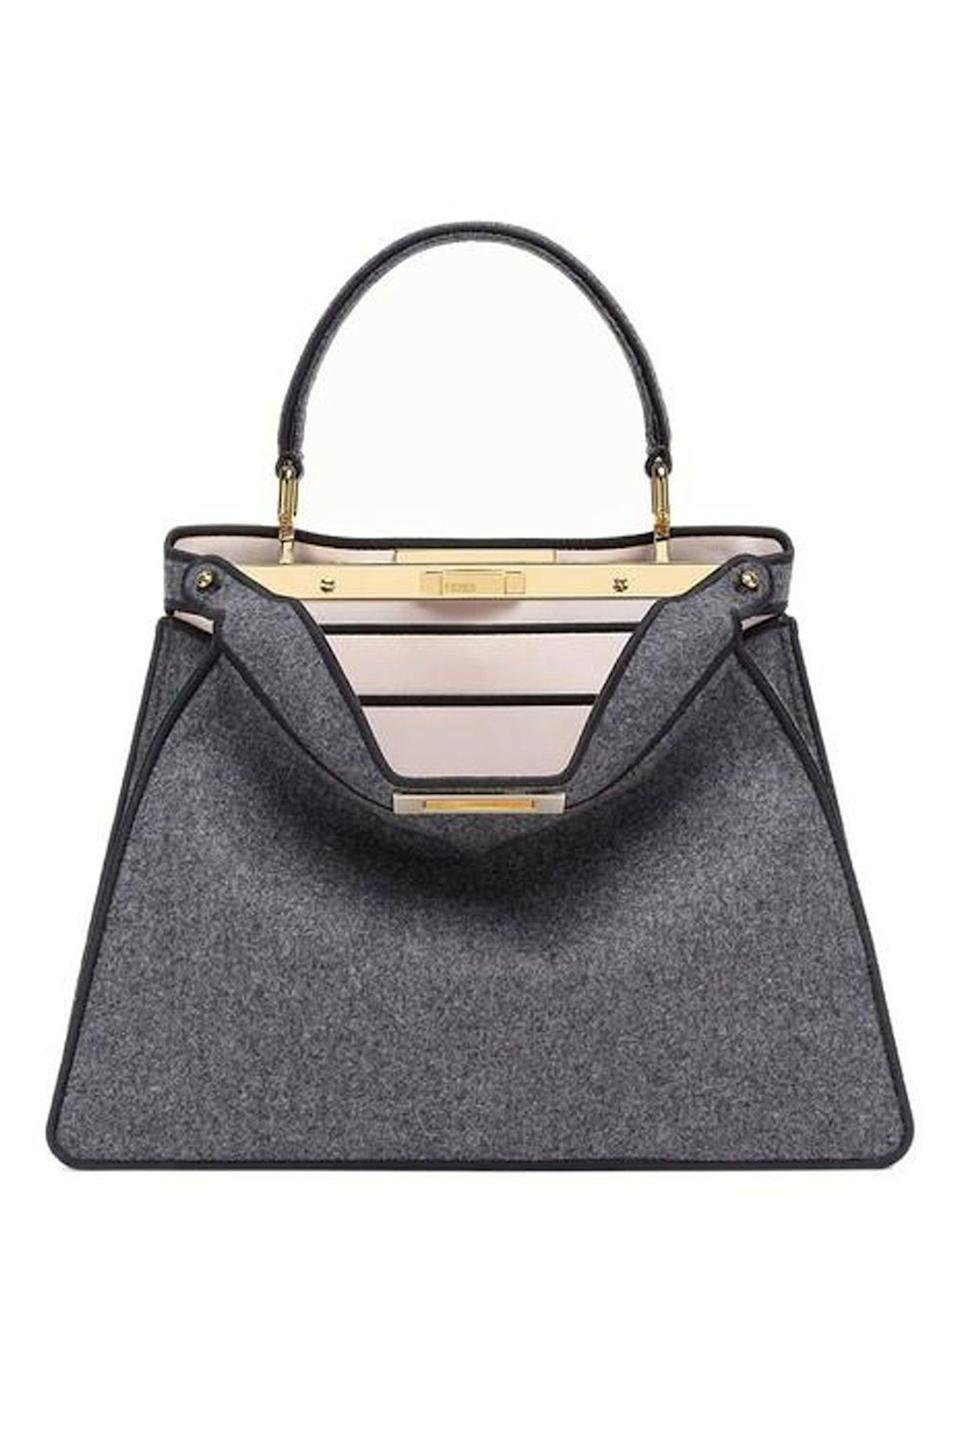 """<p><strong>Fendi</strong></p><p>fendi.com</p><p><strong>$4550.00</strong></p><p><a href=""""https://go.redirectingat.com?id=74968X1596630&url=https%3A%2F%2Fwww.fendi.com%2Fus%2Fwoman-bags%2Fmedium-peekaboo-iseeu-8bn321ae94f1d50%3Ffrom%3Dsearch%26queryId%3D52c4192863e397e6881446a91428689c&sref=https%3A%2F%2Fwww.elle.com%2Ffashion%2Fshopping%2Fg34551759%2Ffall-investment-bags-2020%2F"""" rel=""""nofollow noopener"""" target=""""_blank"""" data-ylk=""""slk:Shop Now"""" class=""""link rapid-noclick-resp"""">Shop Now</a></p><p>This playful tote by Fendi will put a smile on your face. It's a spin on a classic structured bag, with a slouchy front that drops down to reveal a satin lining in carnation pink. </p>"""